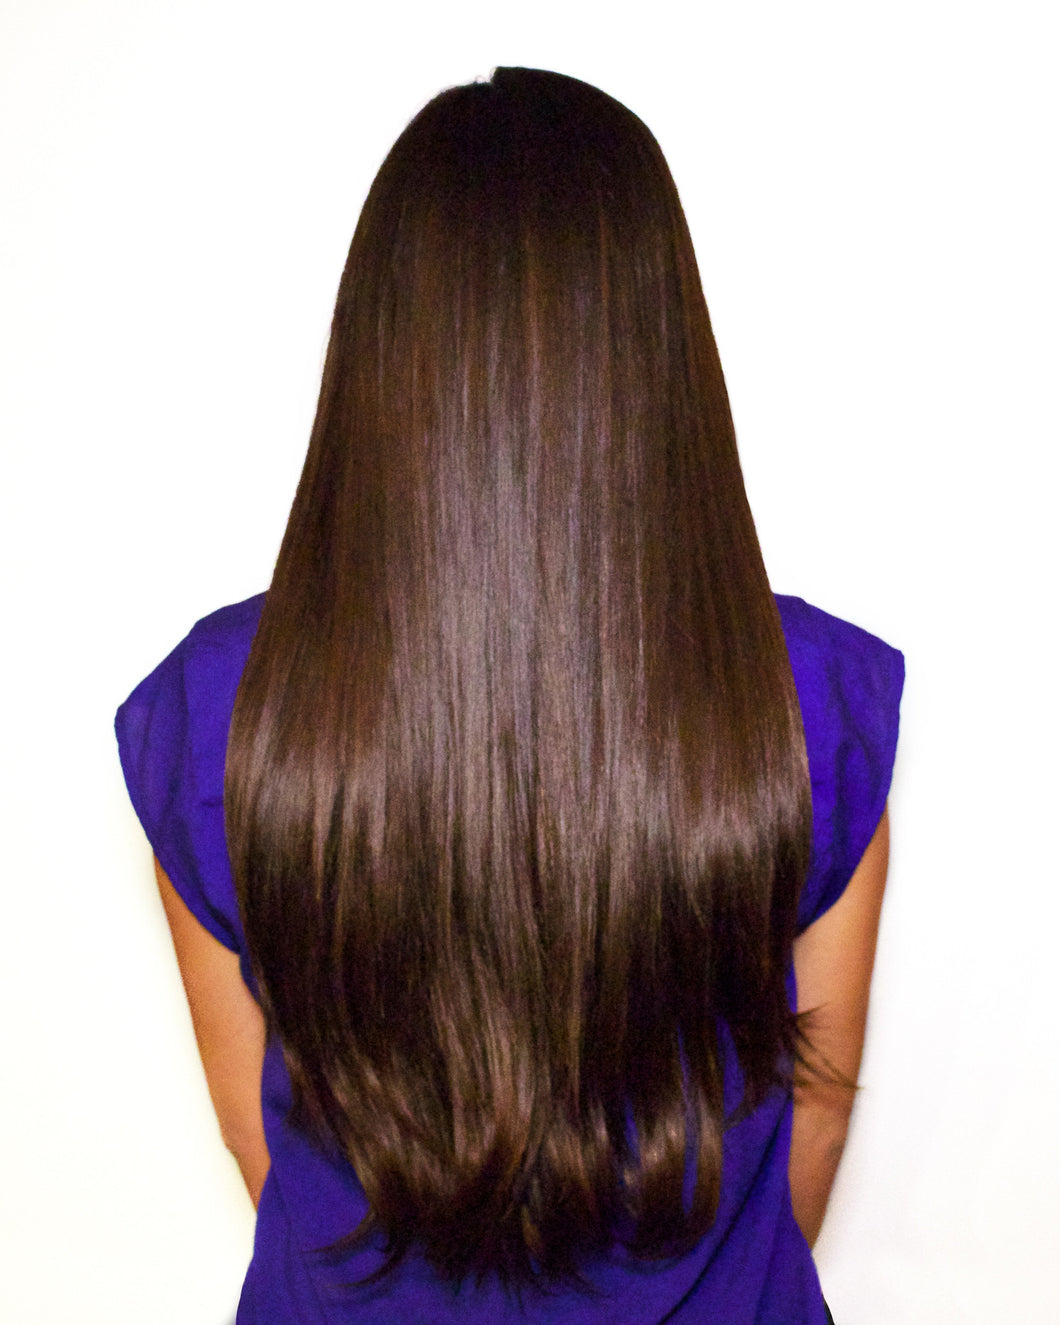 clip in hair extensions #2 dark mocha brown 20